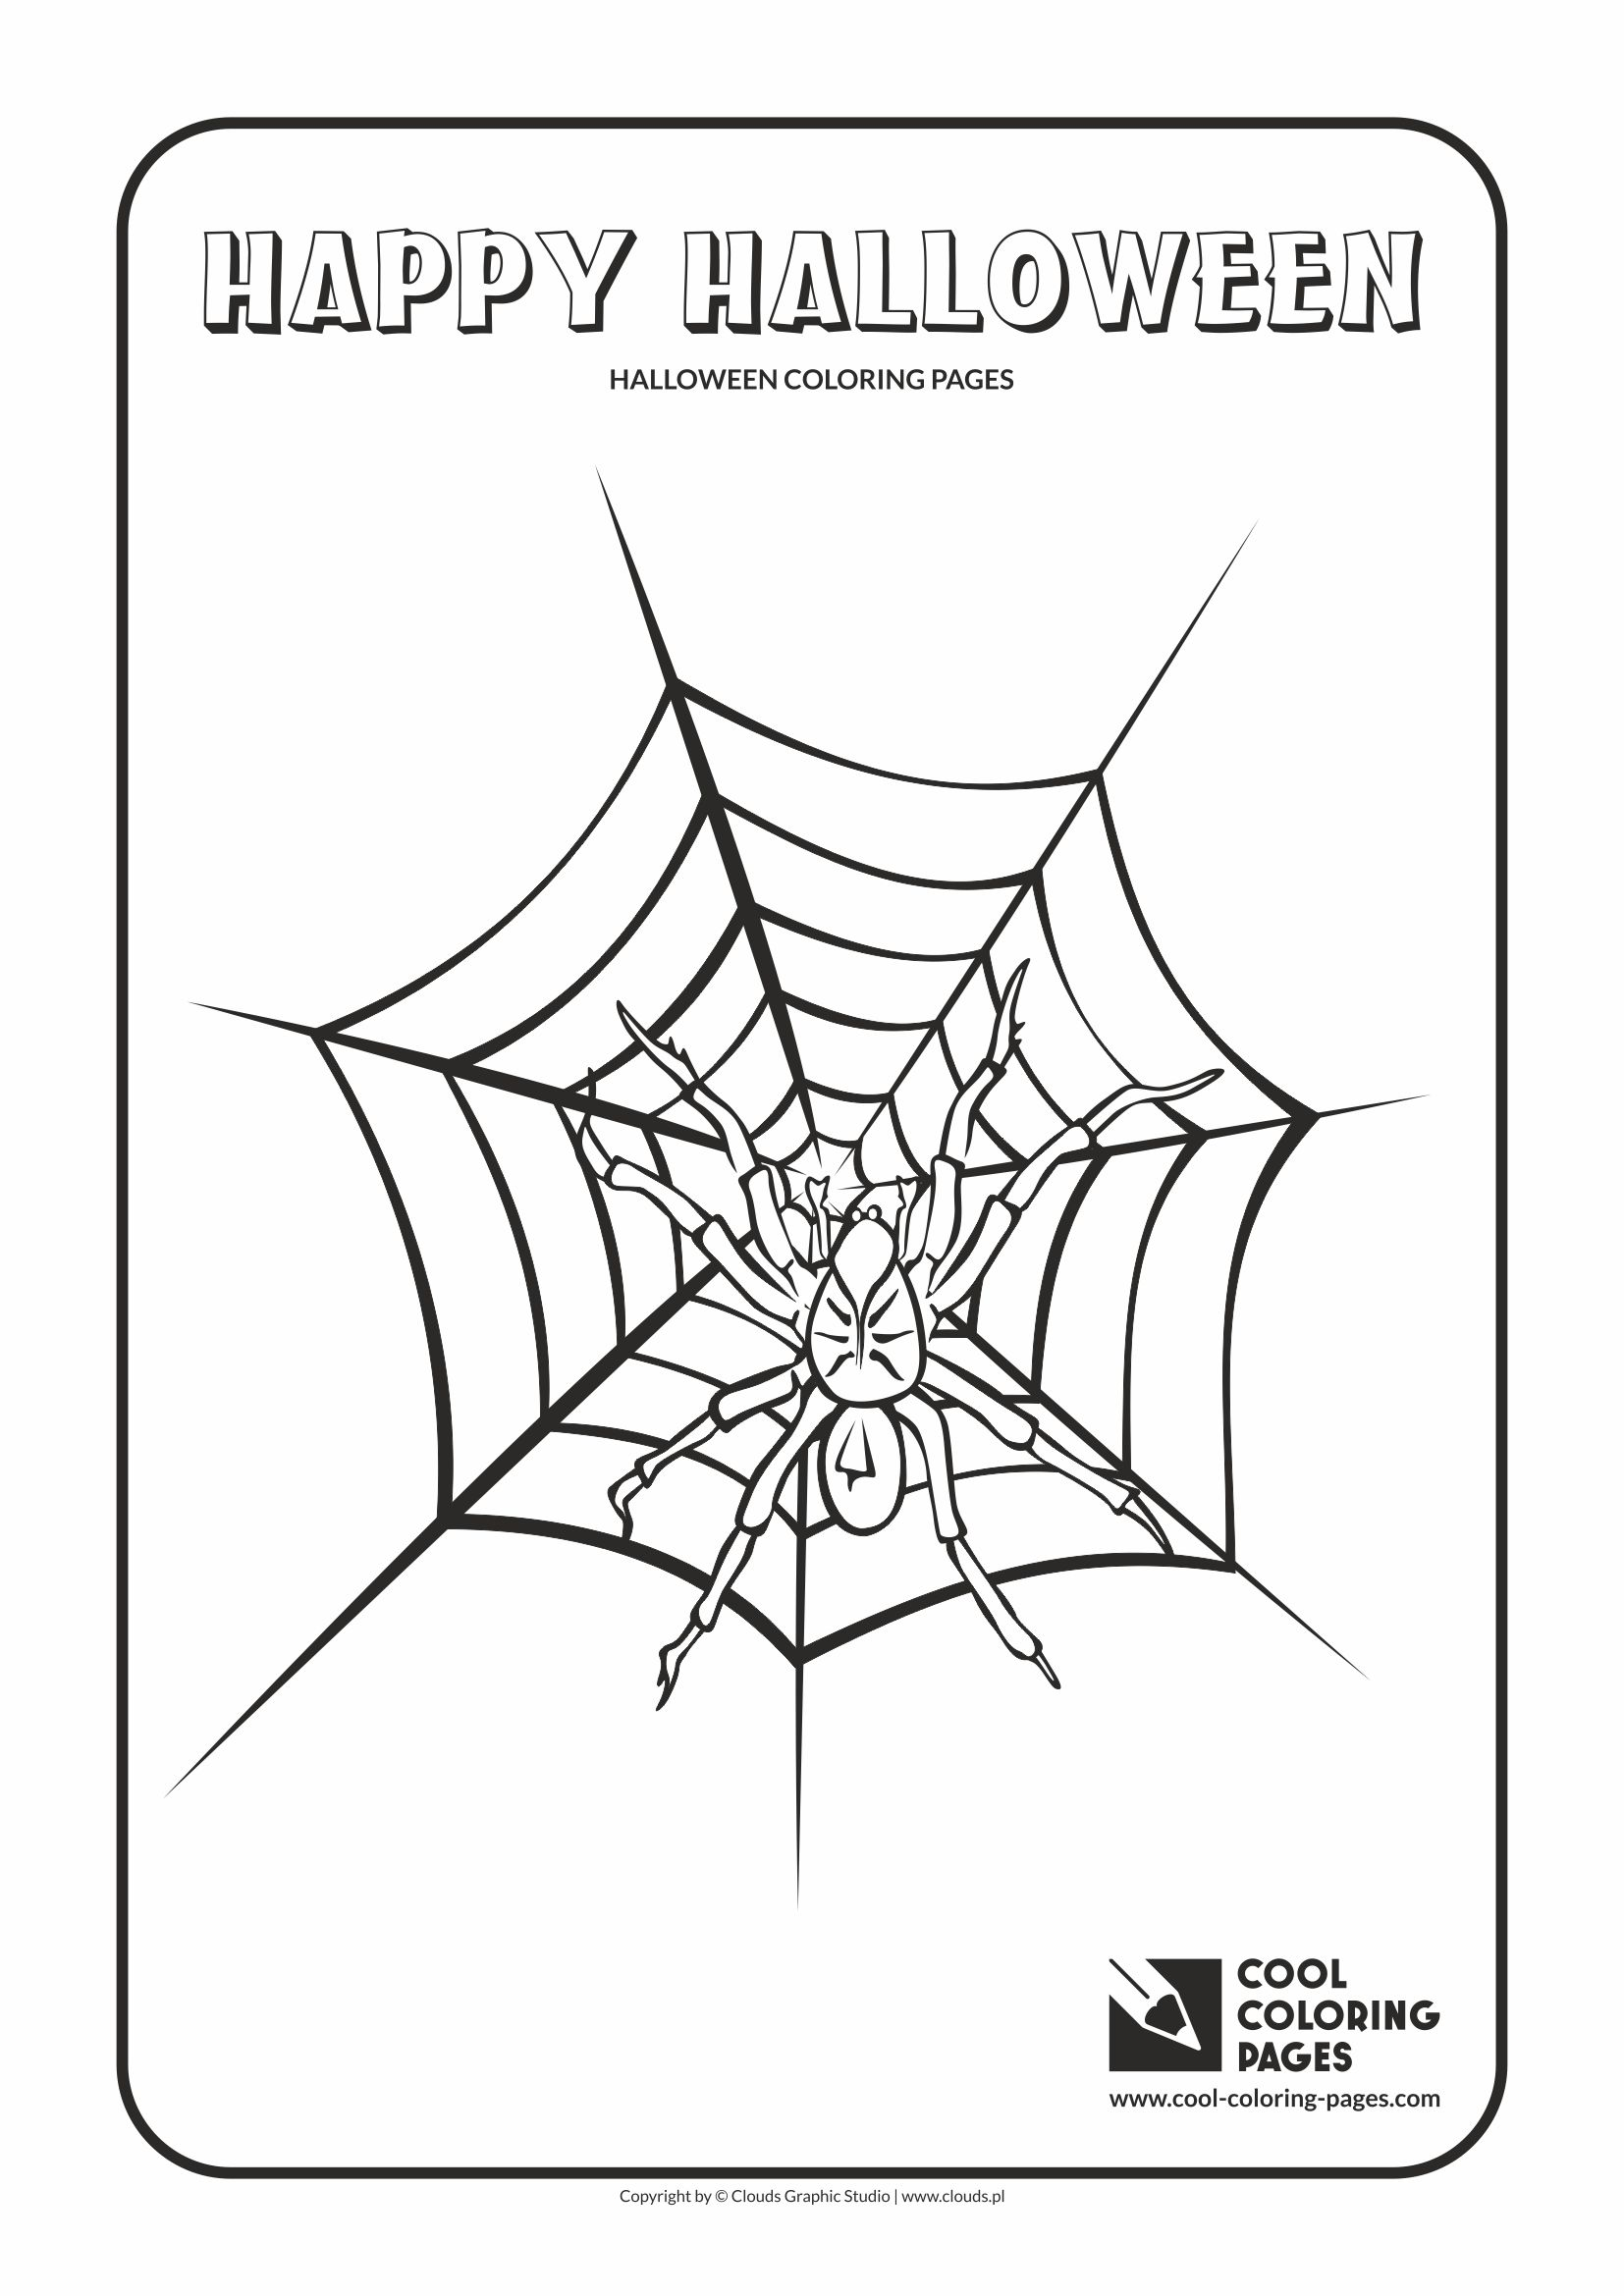 cool coloring pages holidays halloween spider coloring page with halloween spider - Cool Color Pages